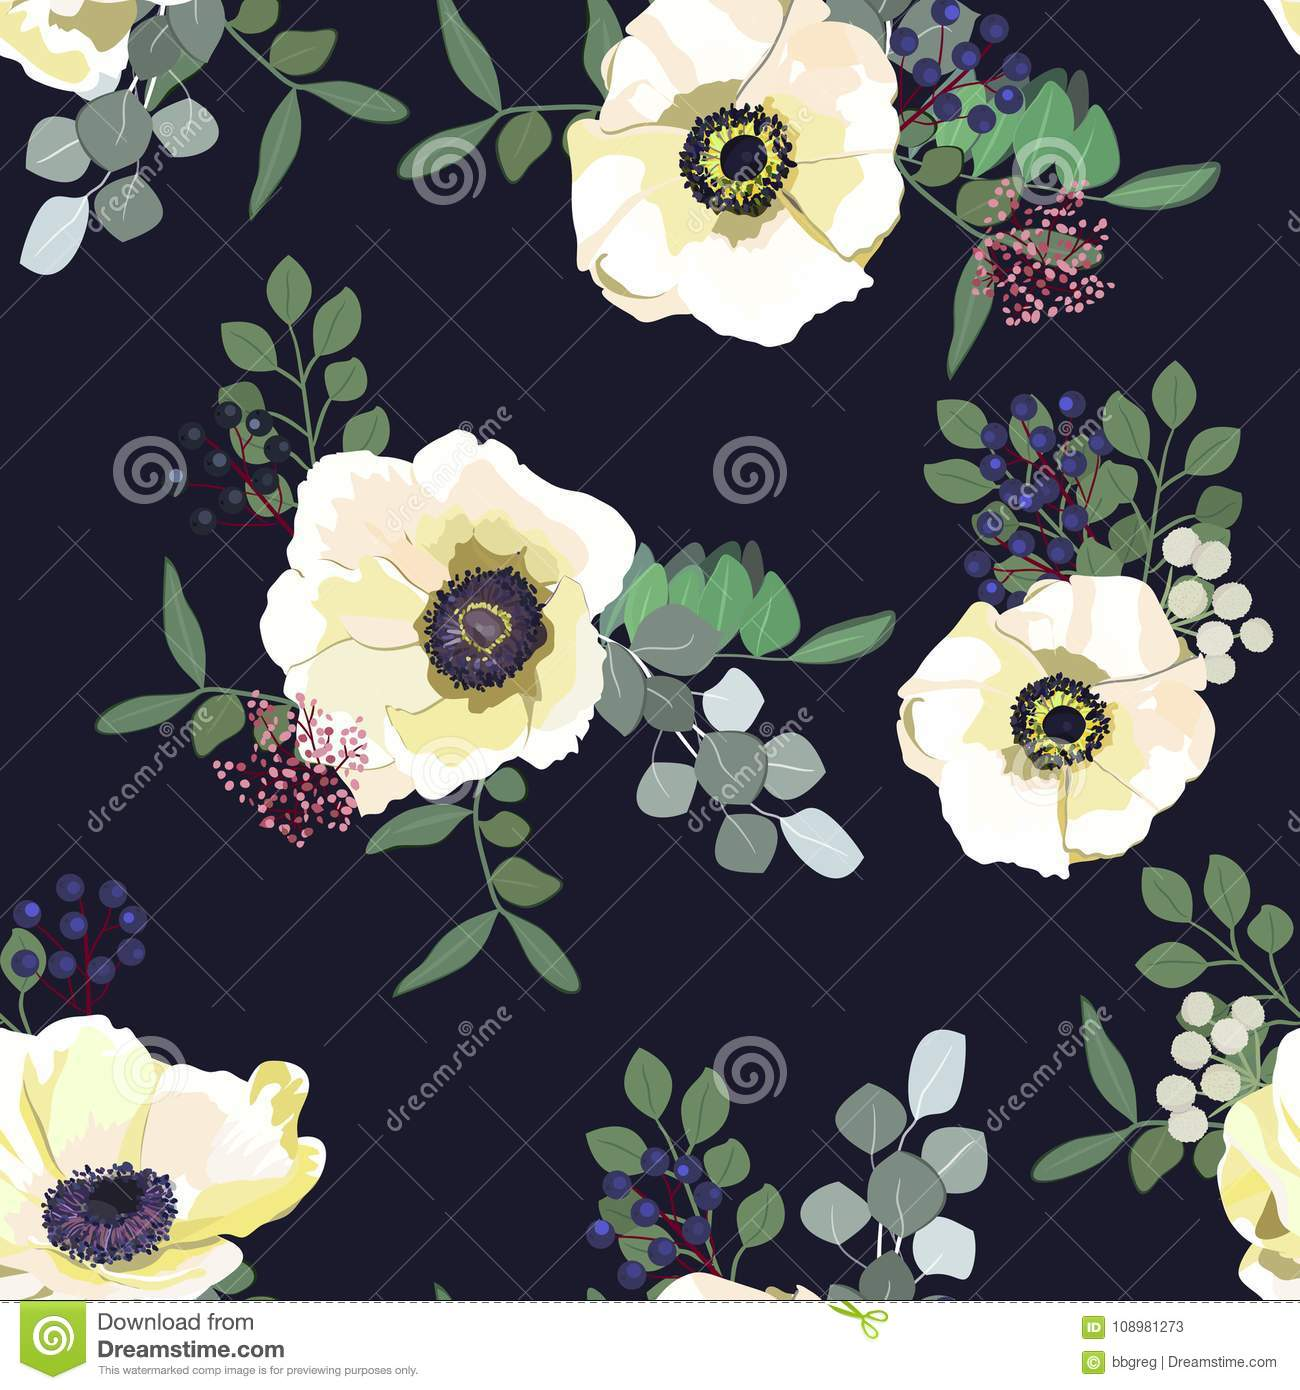 Seamless Pattern With White Anemone Flowers Berries And Greenery On Dark Background Winter Floral Design For Wedding Stock Vector Illustration Of Element Nature 108981273